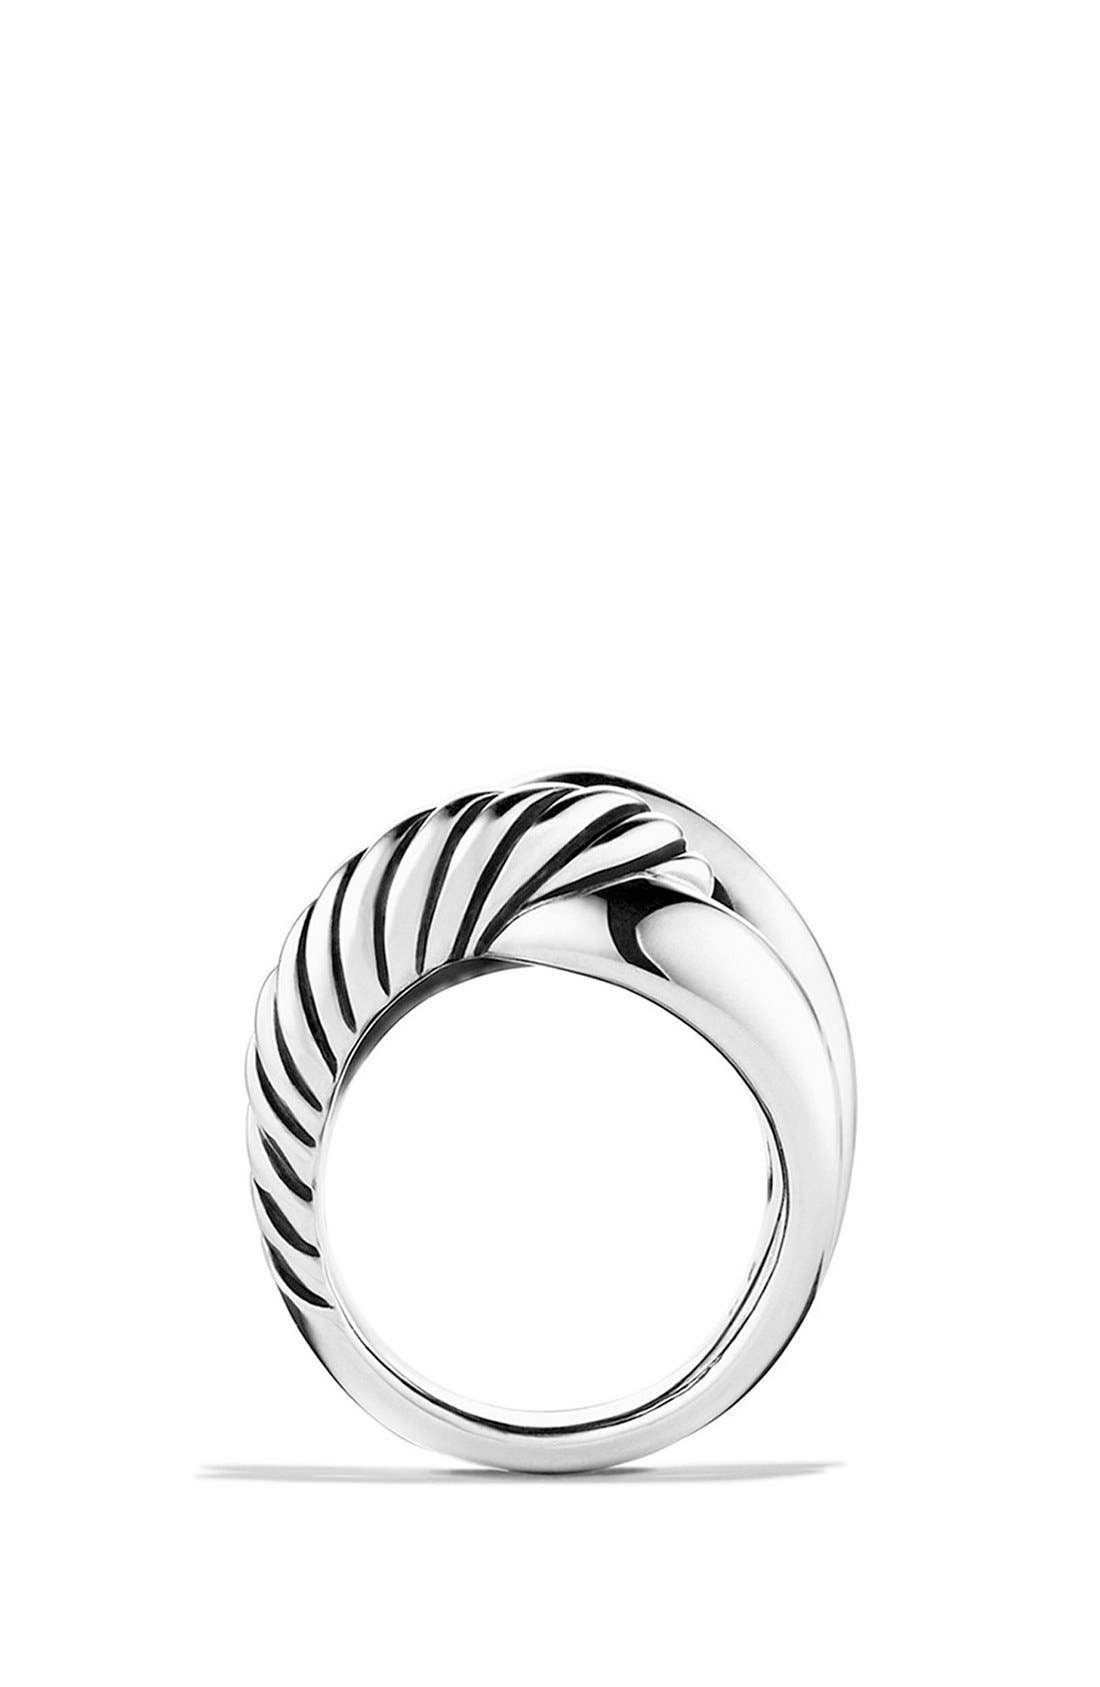 'Infinity' Large Ring,                             Alternate thumbnail 4, color,                             Silver